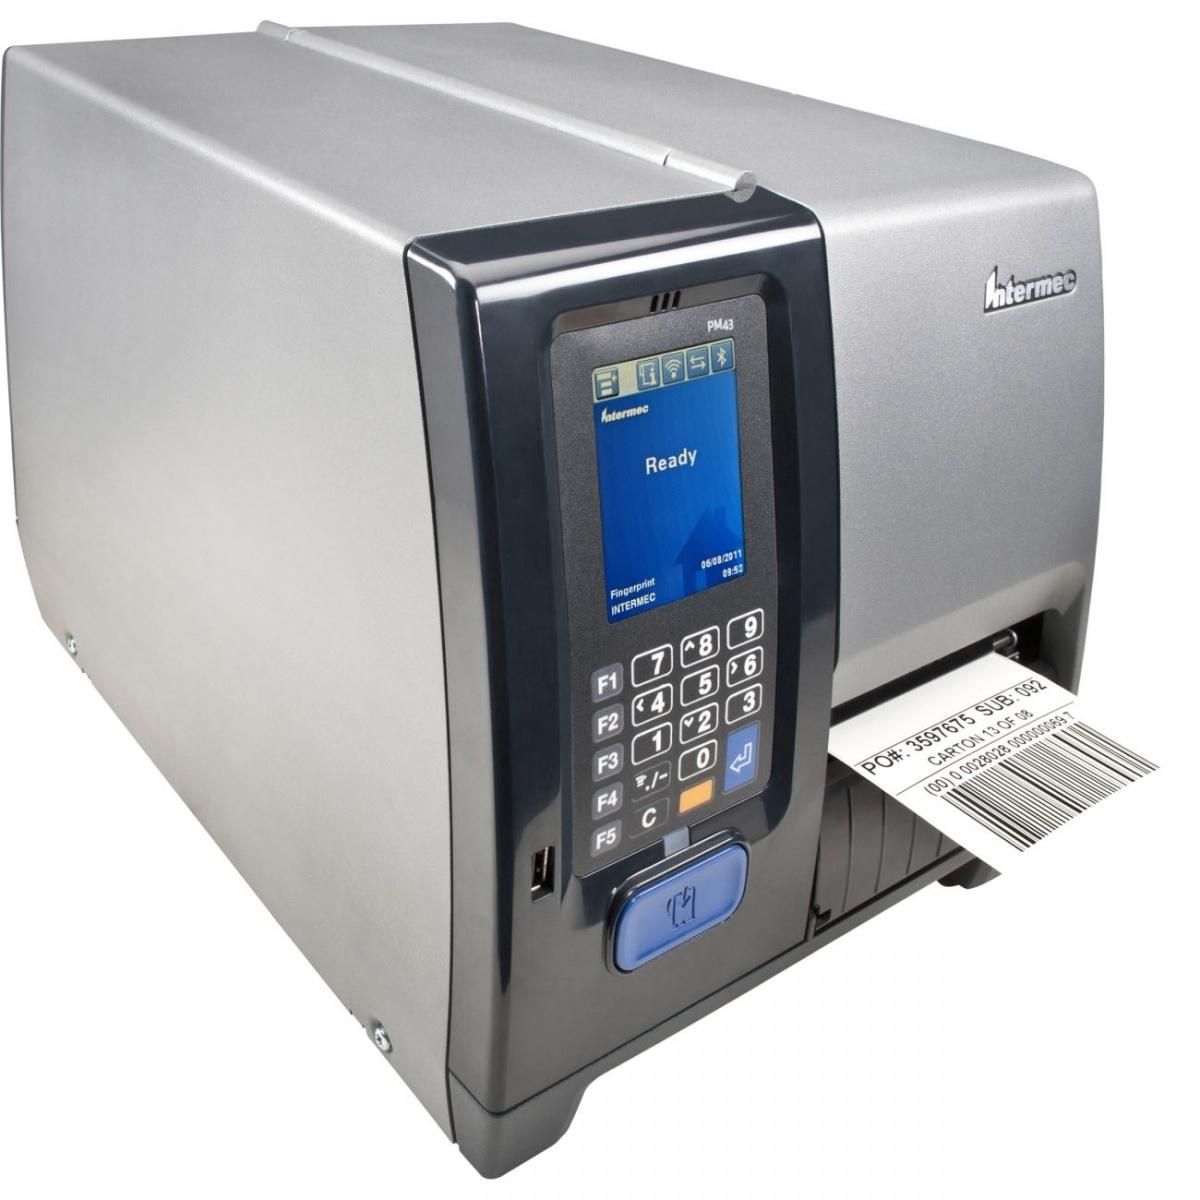 Intermec PM43 Compact тач.дисплей, FT, ROW, Ethernet, Long Door+Front Door, Hanger, TT 203dpi-1